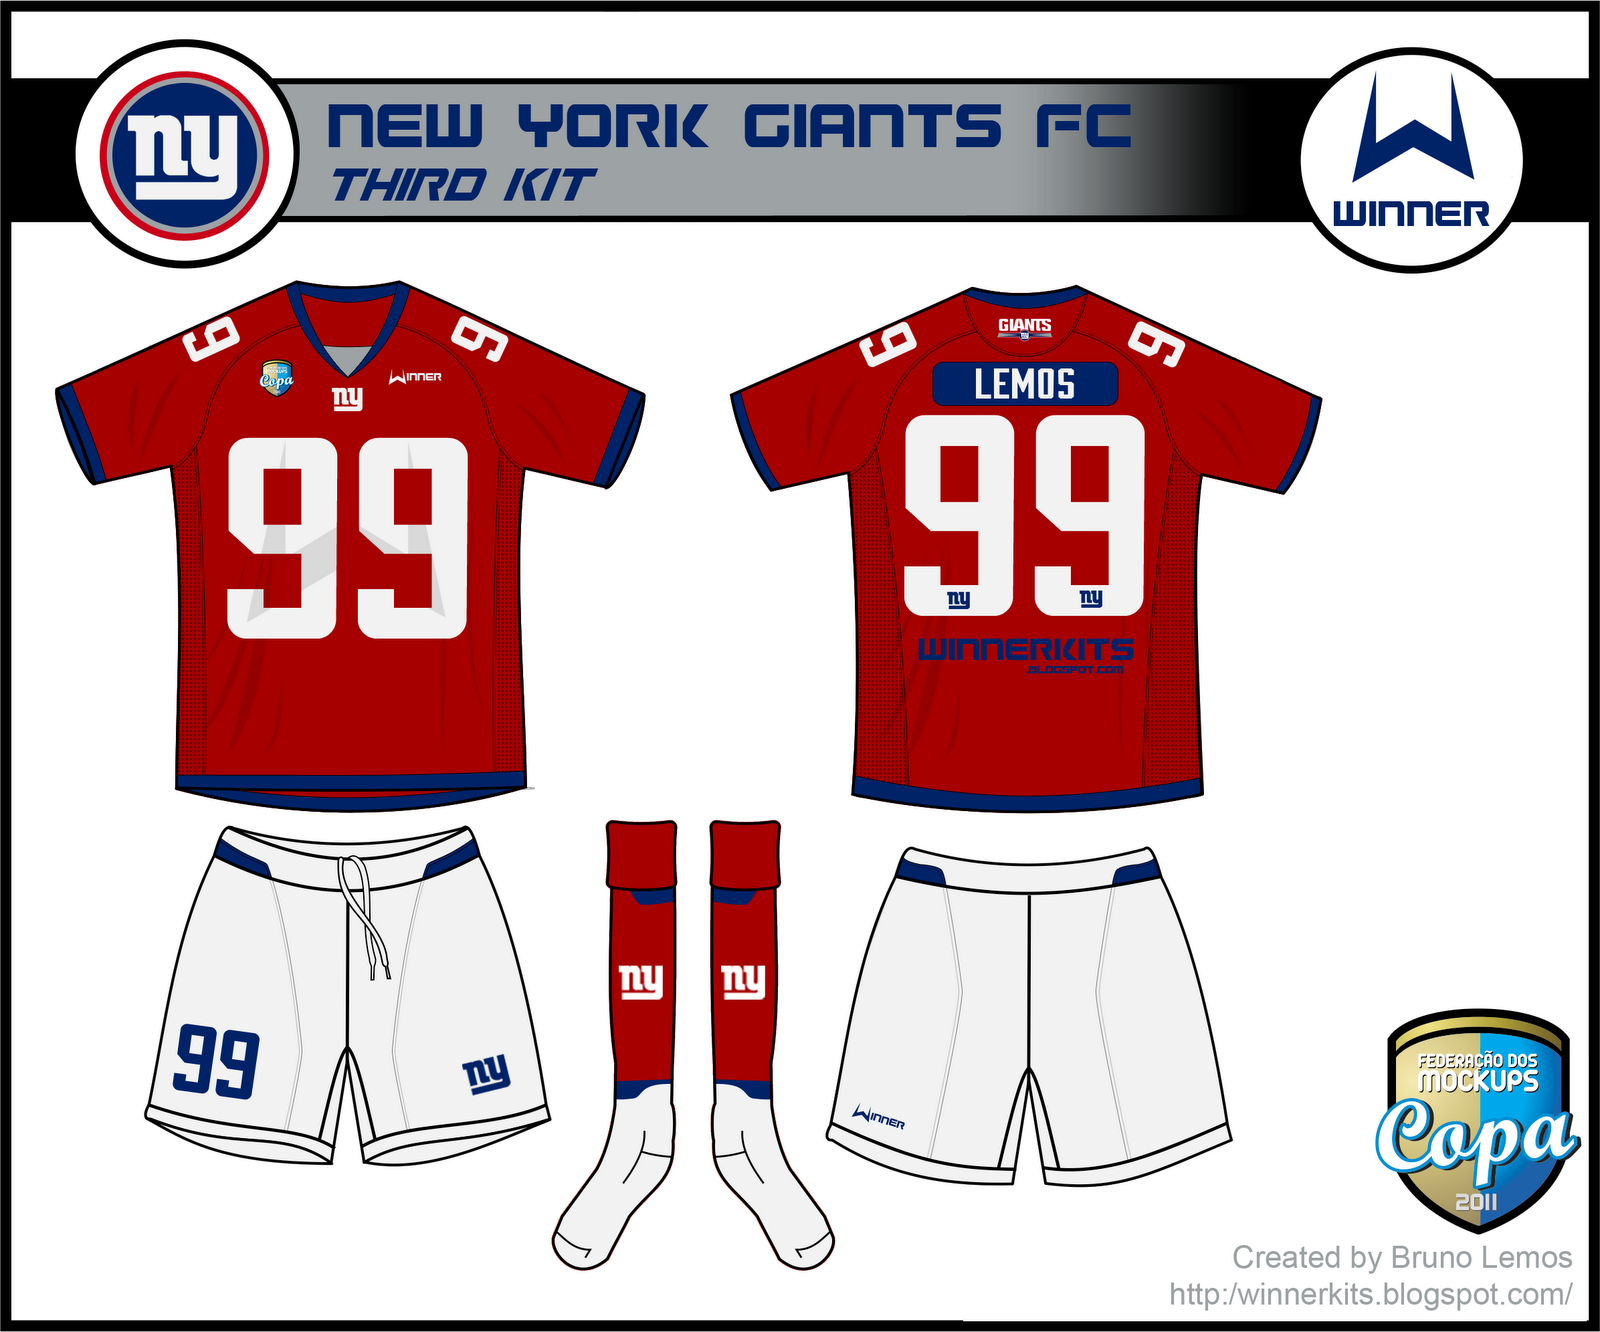 new york giants new uniforms 2014 images